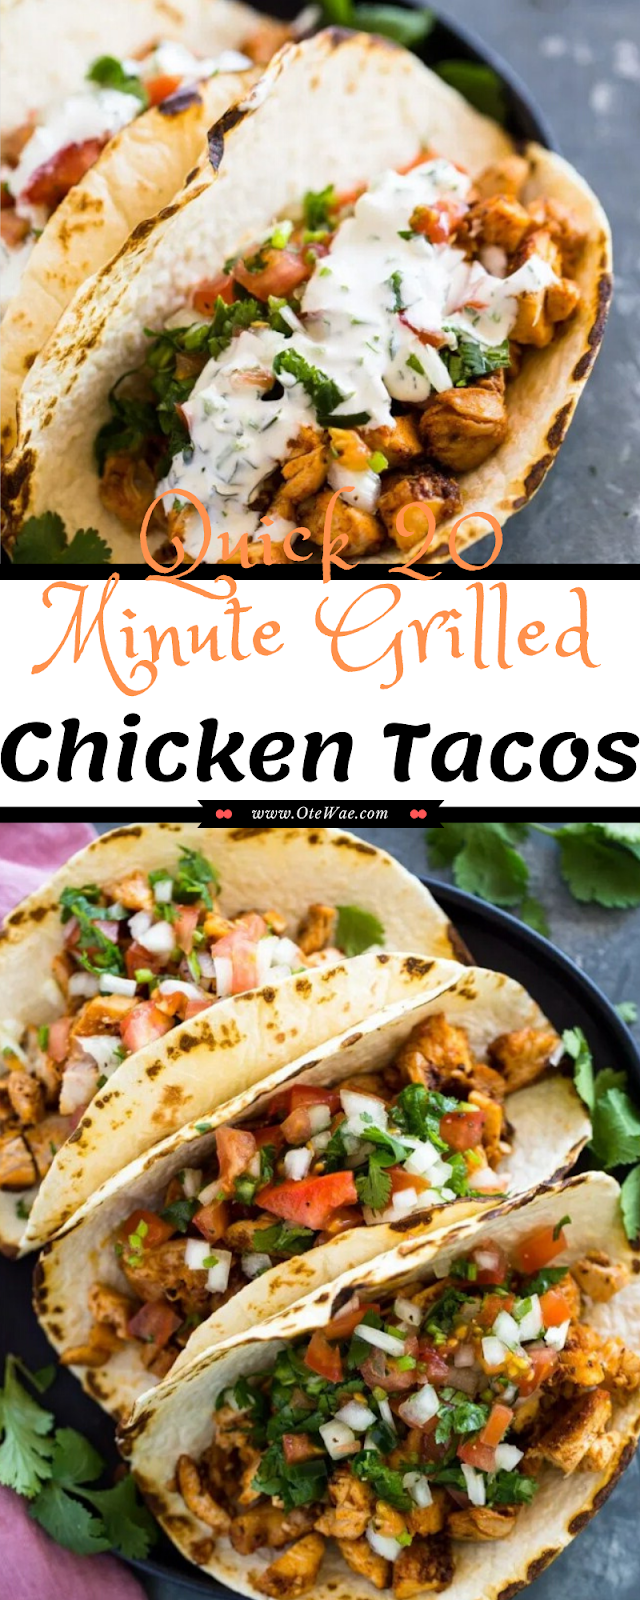 Quick 20 Minute Grilled Chicken Tacos